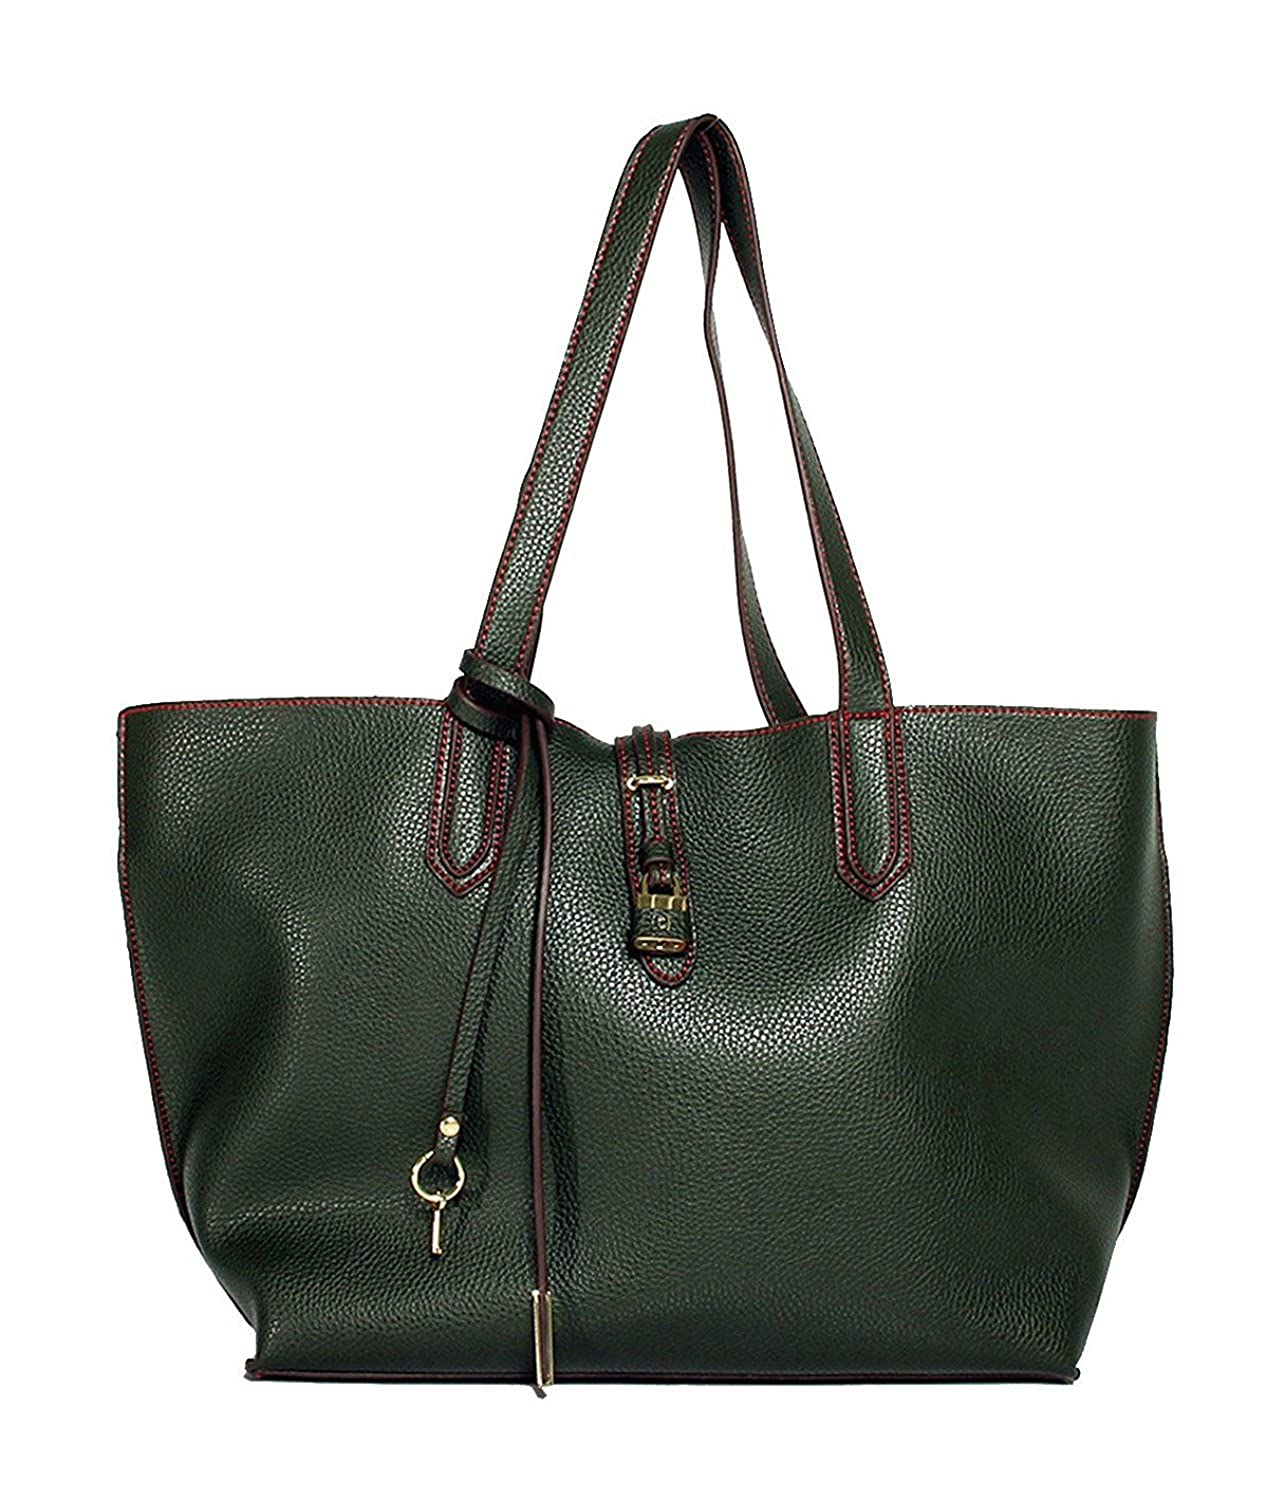 71aa42bb862 Tutilo Designer Handbags: Feature Work and Travel Computer Tote (See More  Colors)